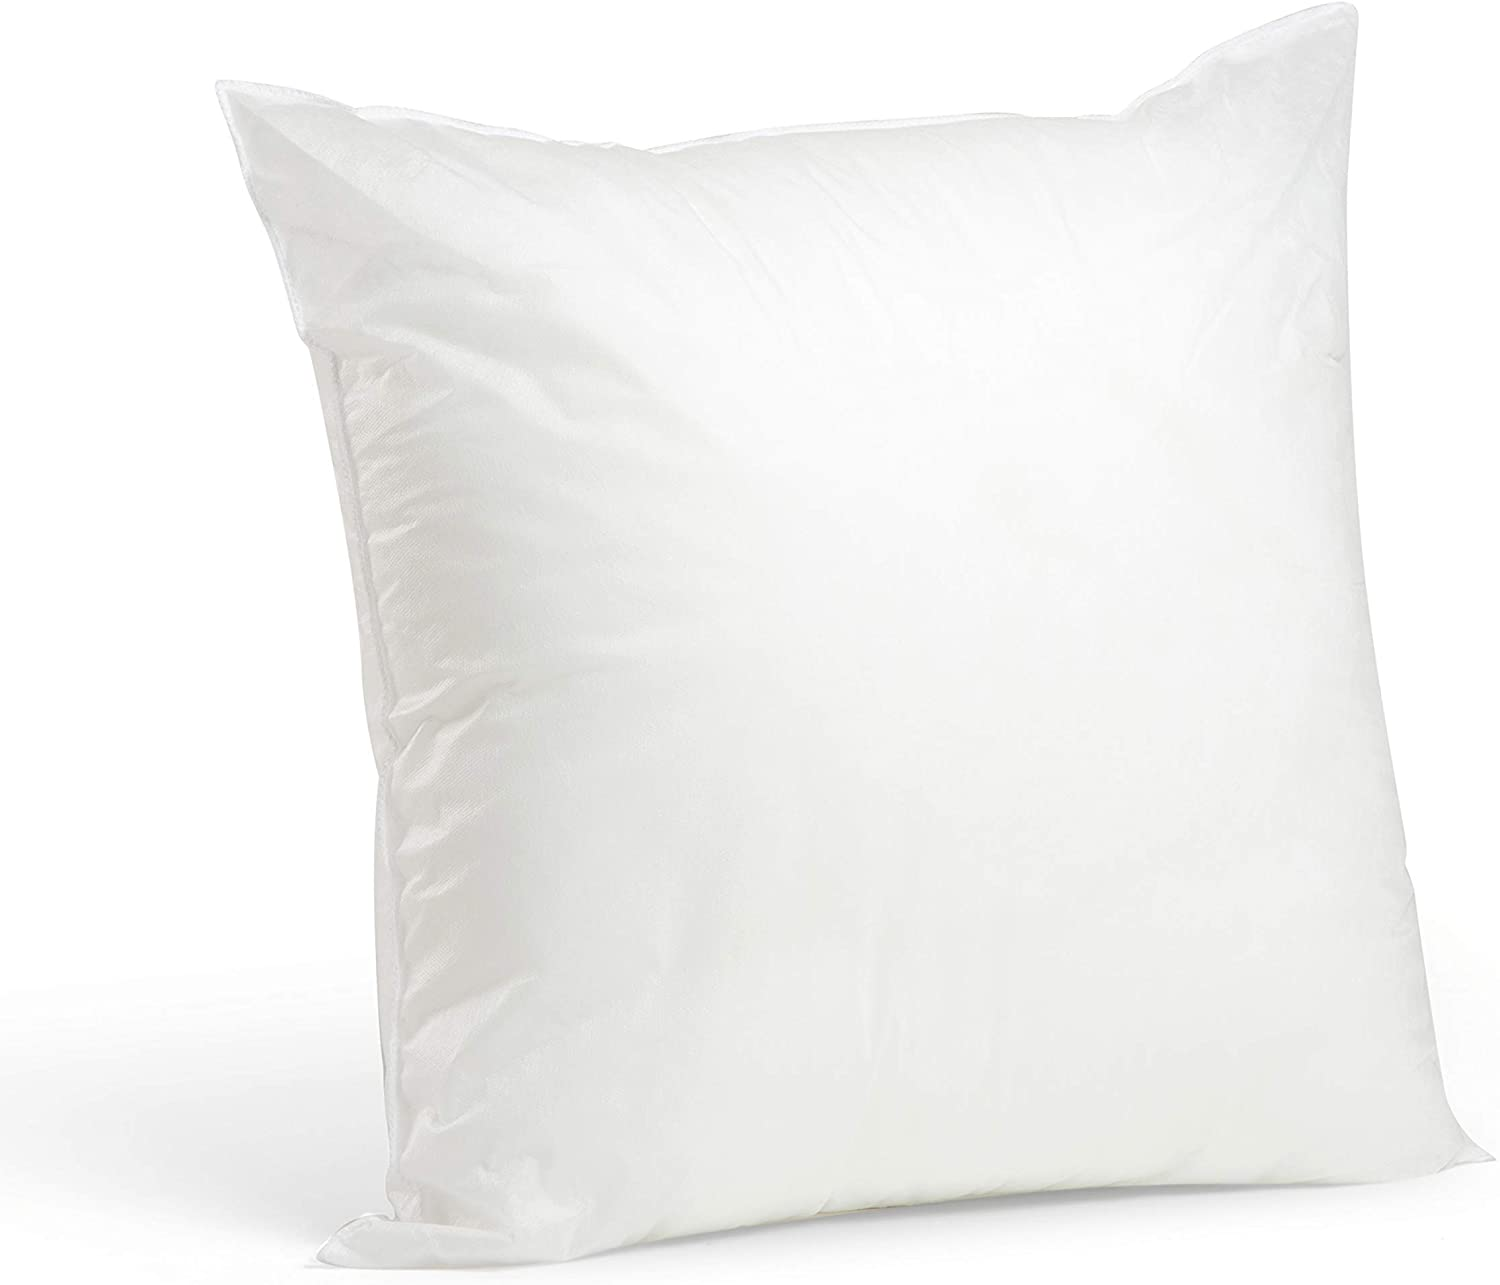 low-pricing Foamily Premium Hypoallergenic Throw Pillow or Special Campaign Couch for Dec Bed